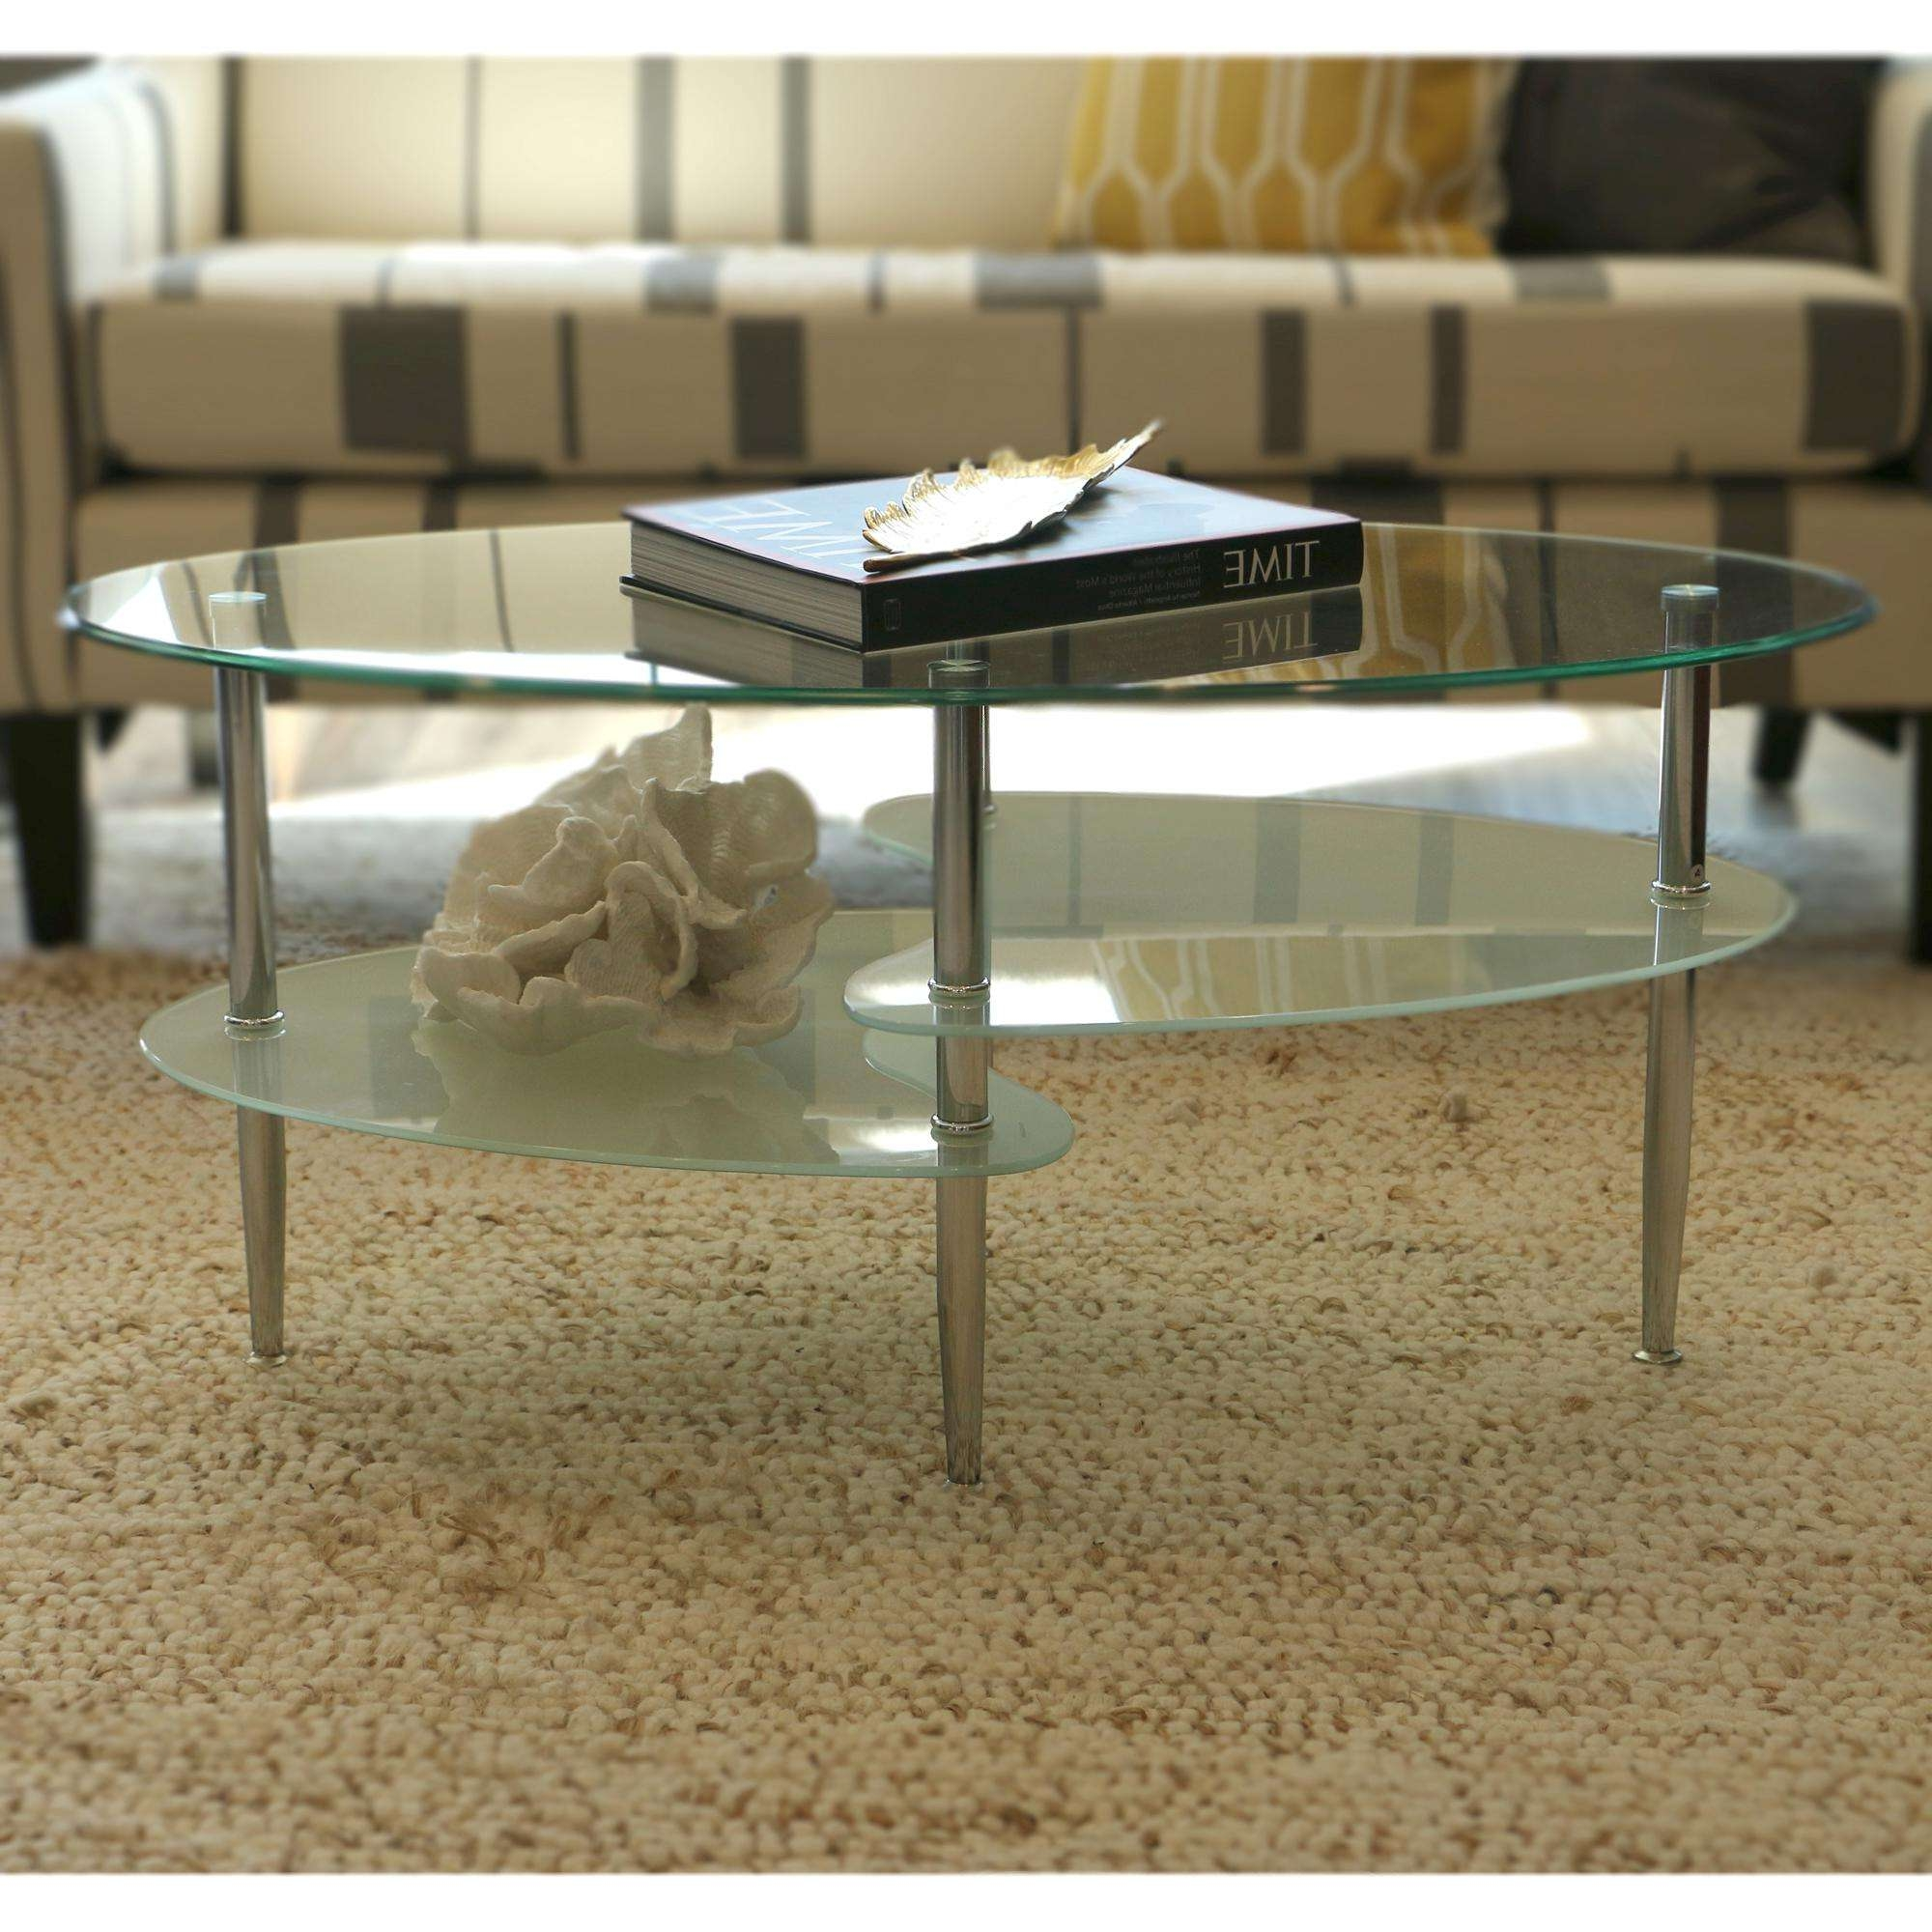 Coffee Tables : Furniture Brass Frame Coffee Table With Oval Glass With Regard To Most Recently Released Oval Glass Coffee Tables (View 1 of 20)